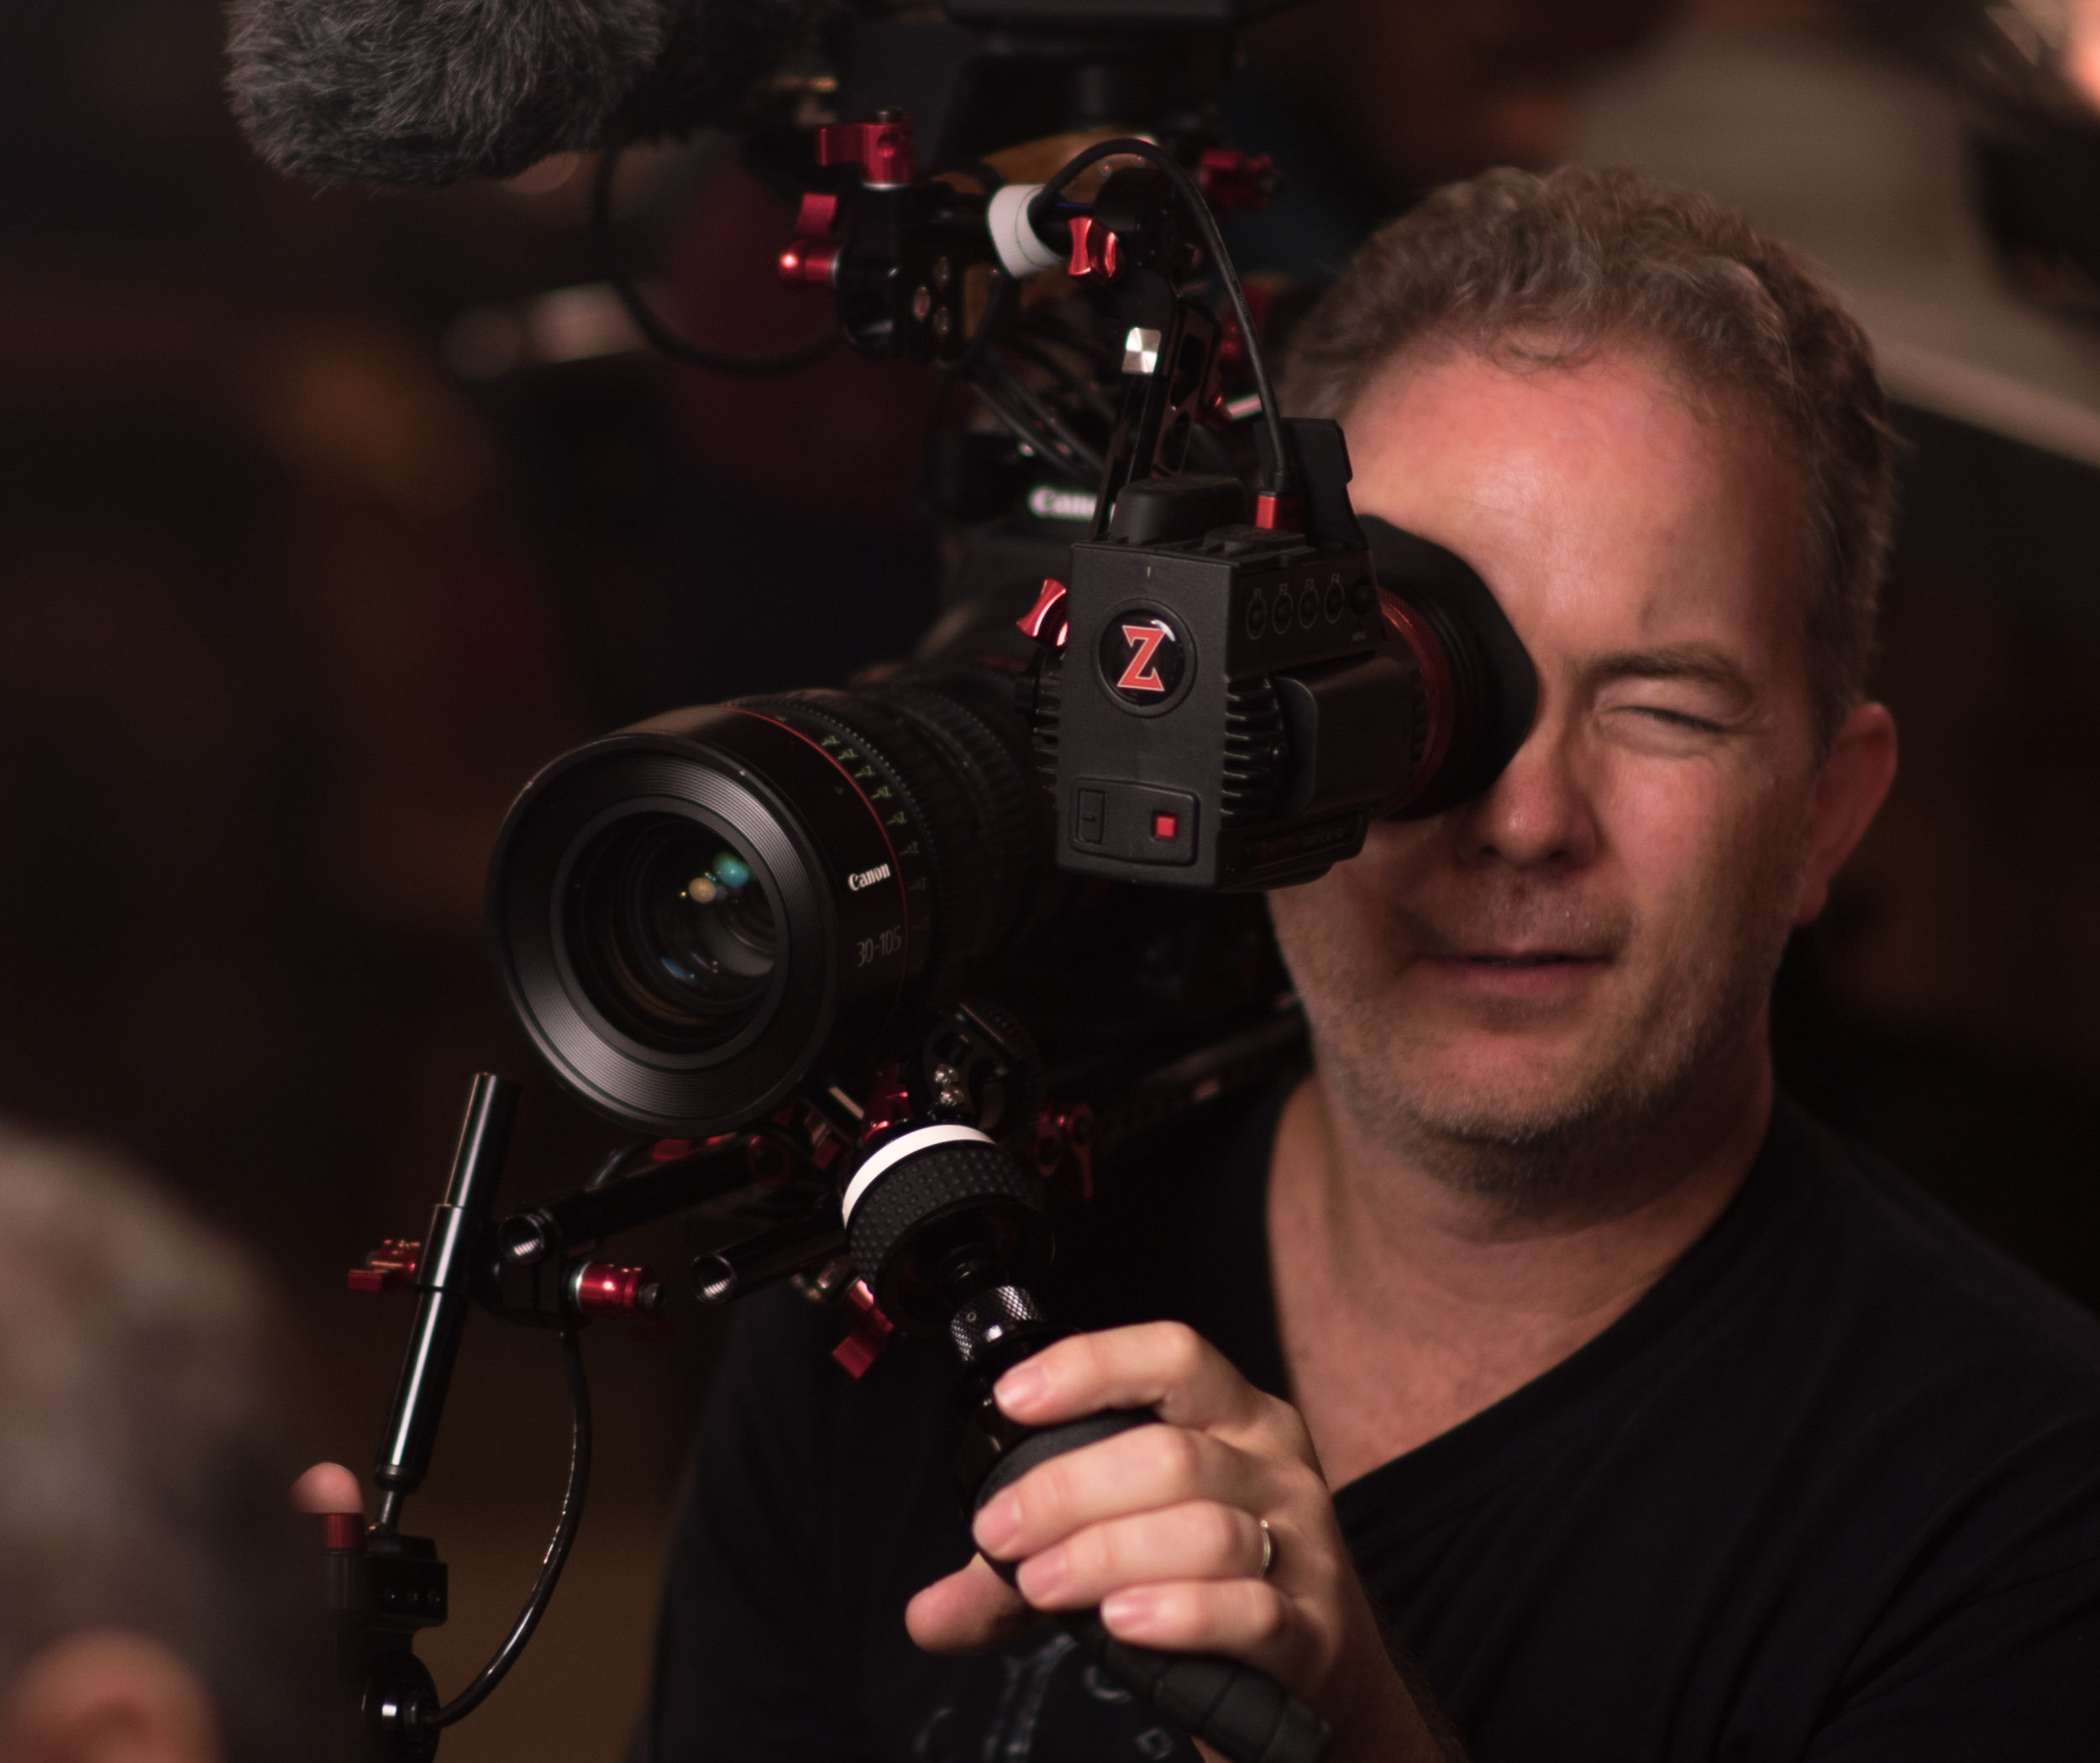 Getting a properly set-up handheld rig is crucial when shooting an entire film handheld. Every flaw magnifies into pain transmitted straight to your back.